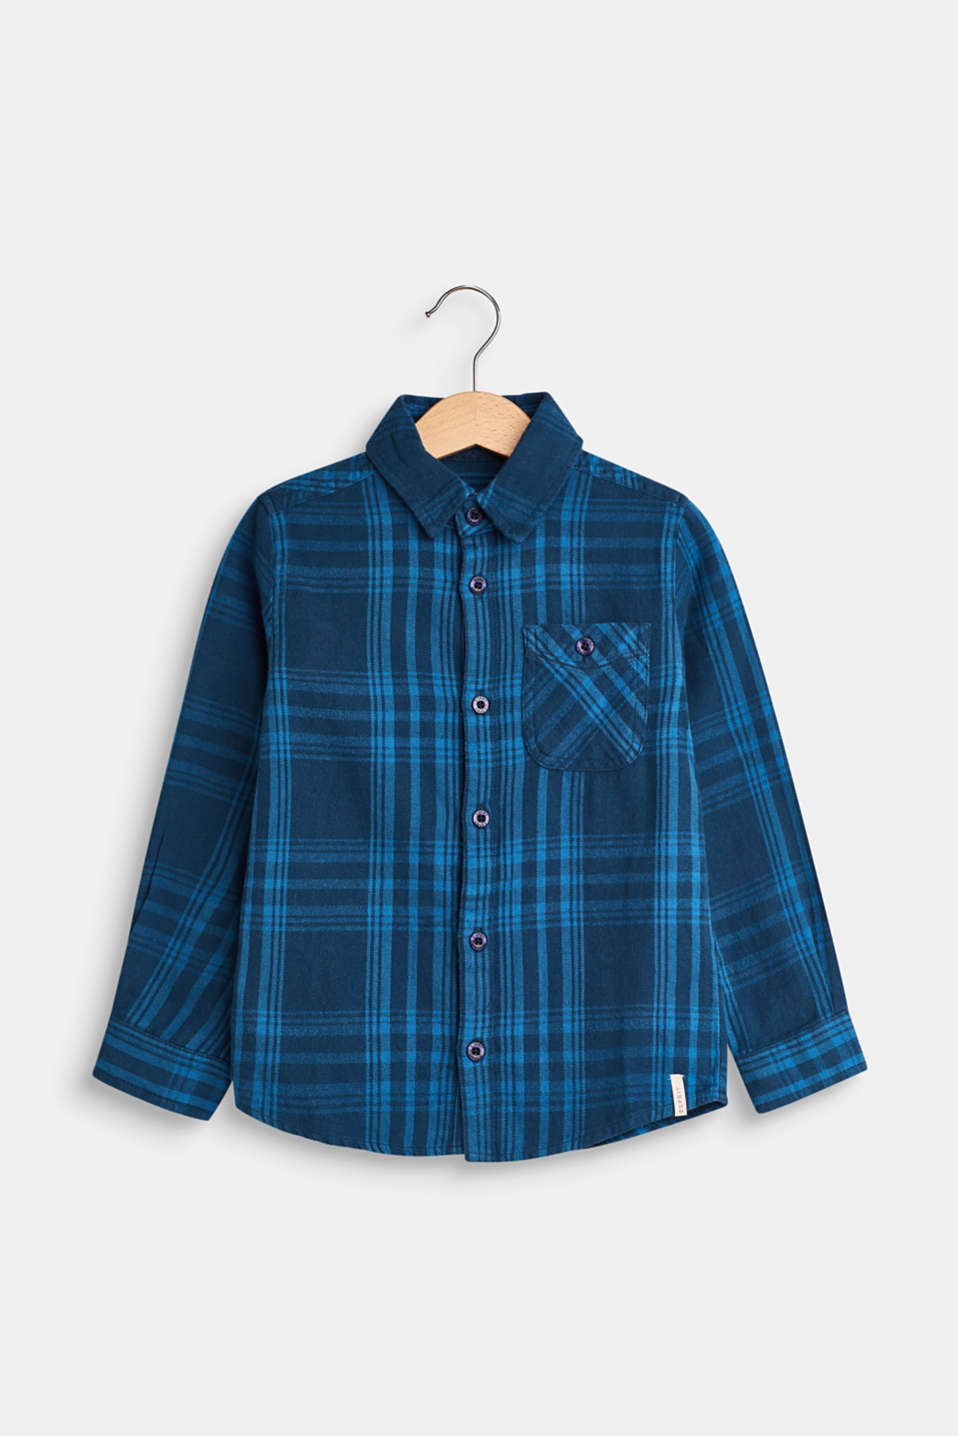 Esprit - Checked shirt with a breast pocket, 100% cotton